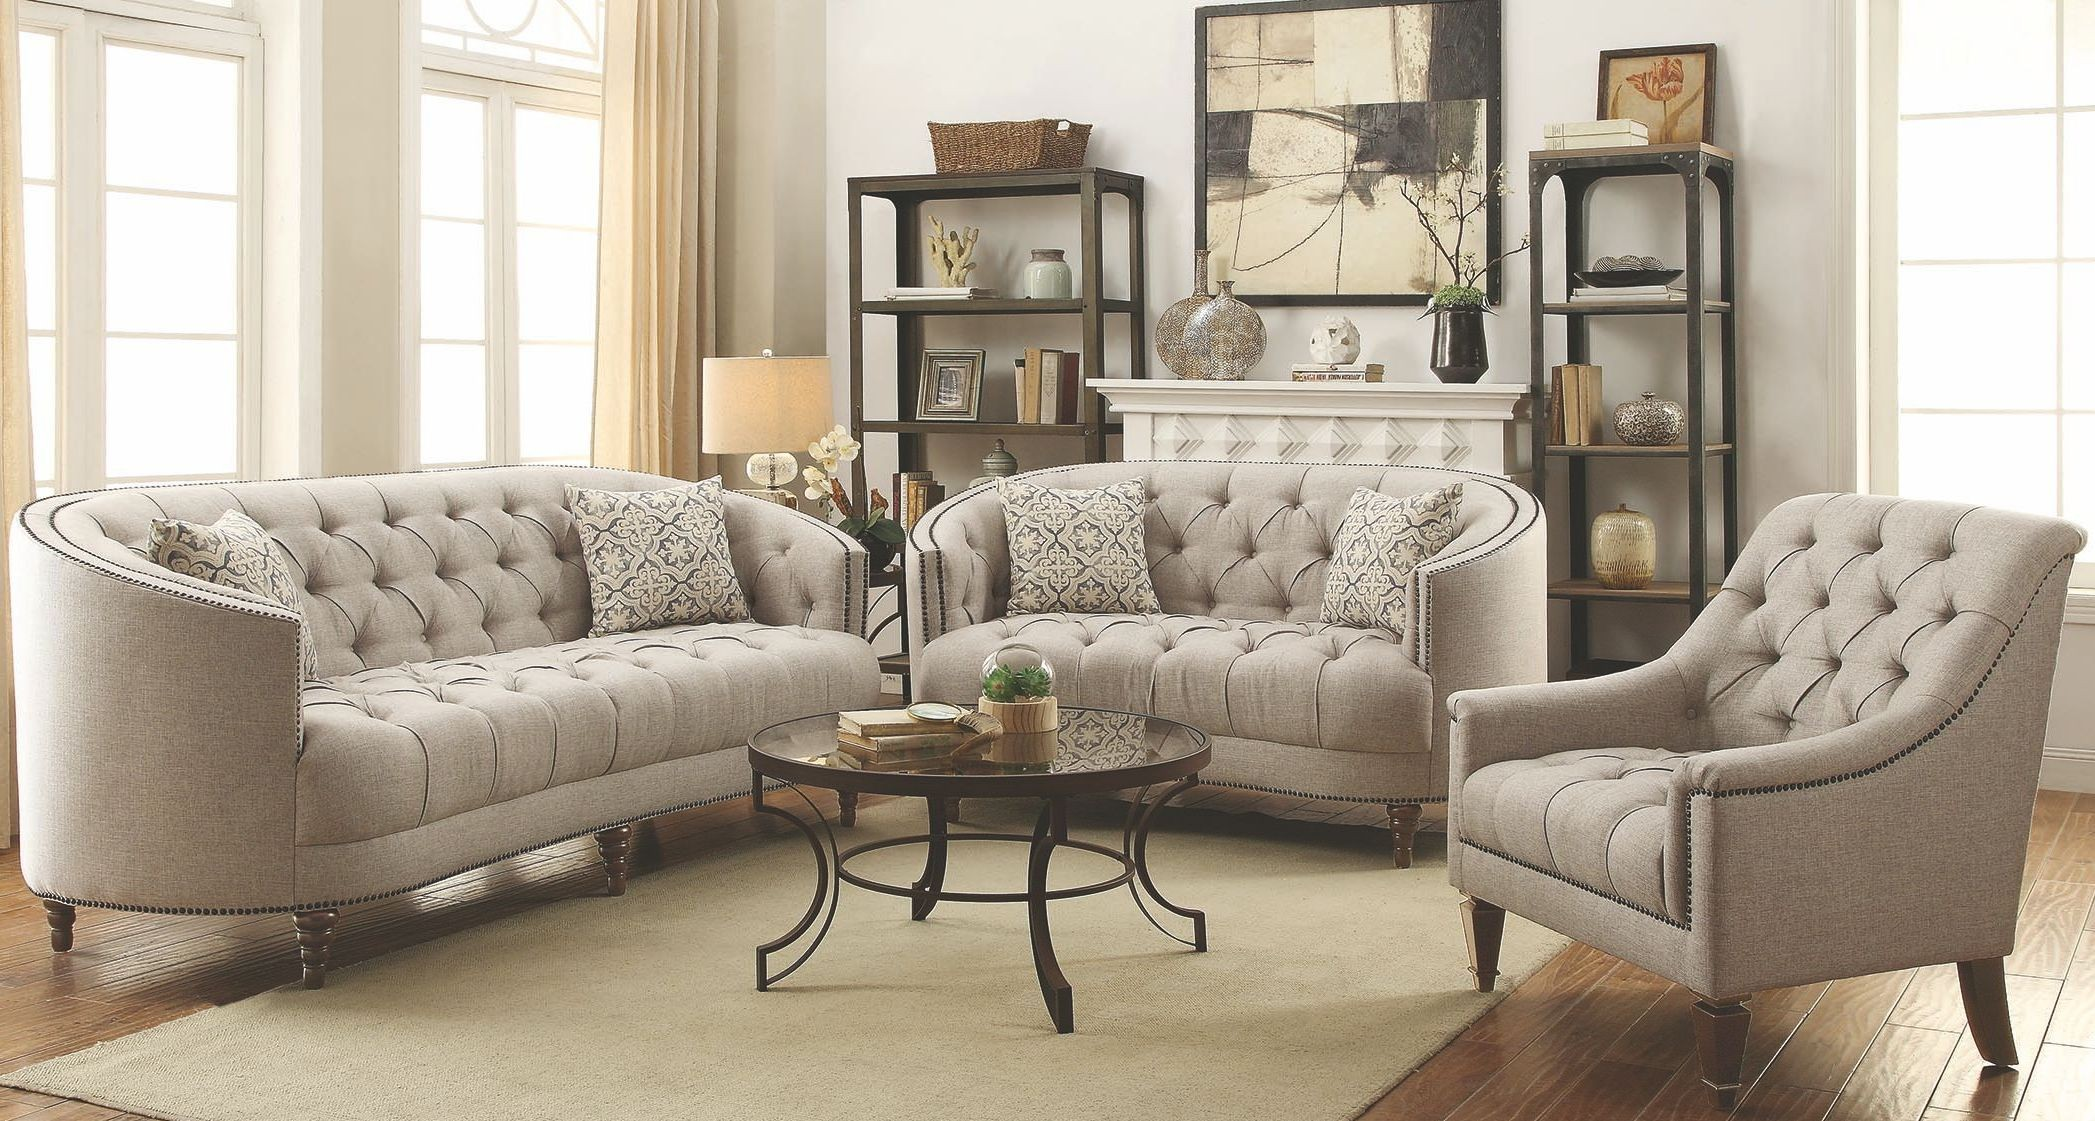 Avonlea stone grey living room set from coaster coleman for Living room sets